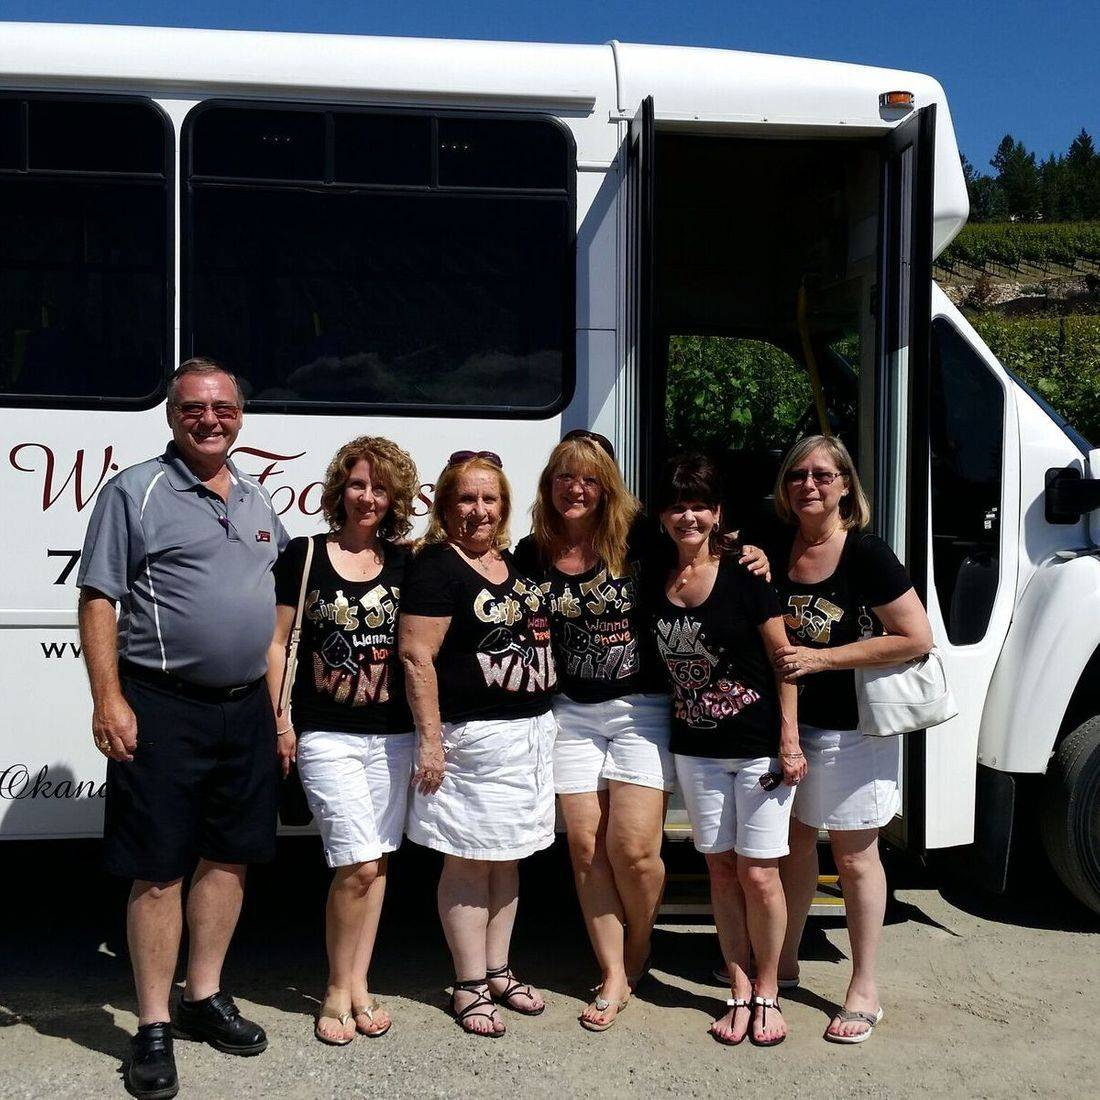 Wine tours with air conditioned, comfortable vehicles.